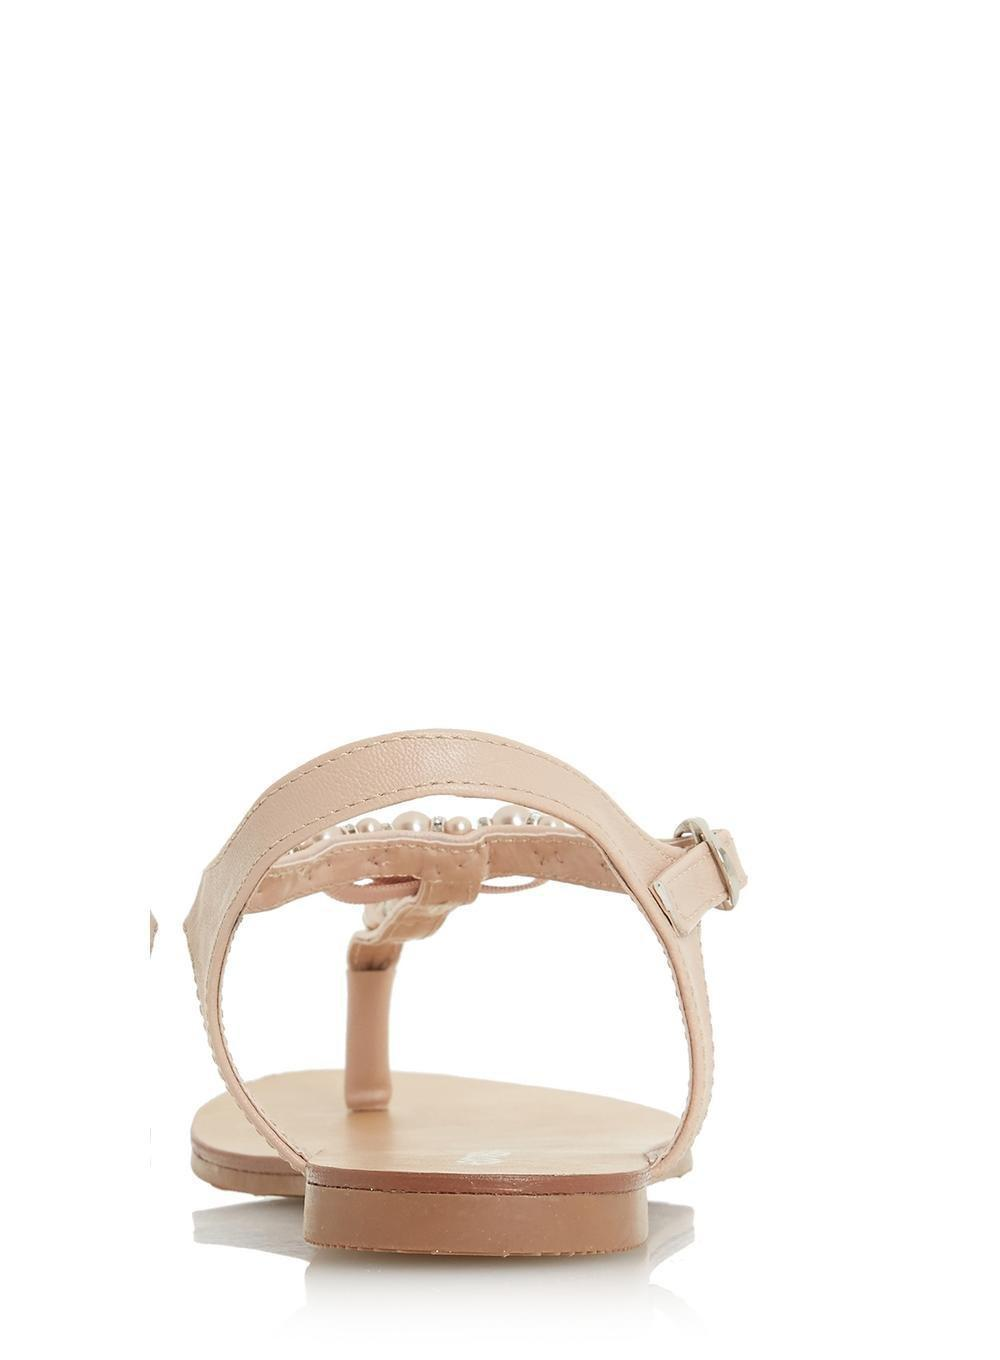 a5c3753db Dorothy Perkins Head Over Heels By Dune Nude 'lucci' Sandals in ...